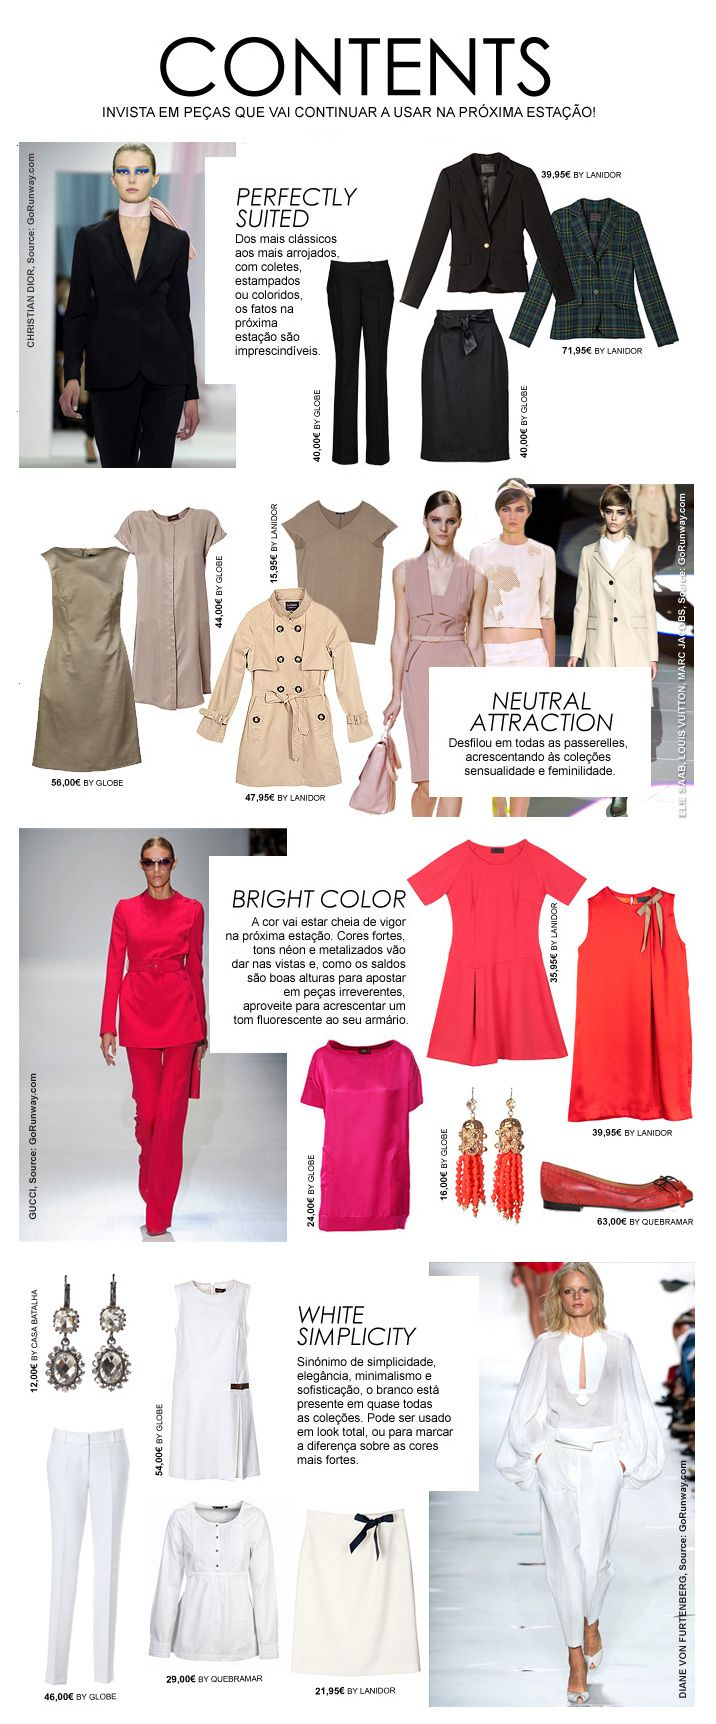 Bstyle bstyle pinterest bright